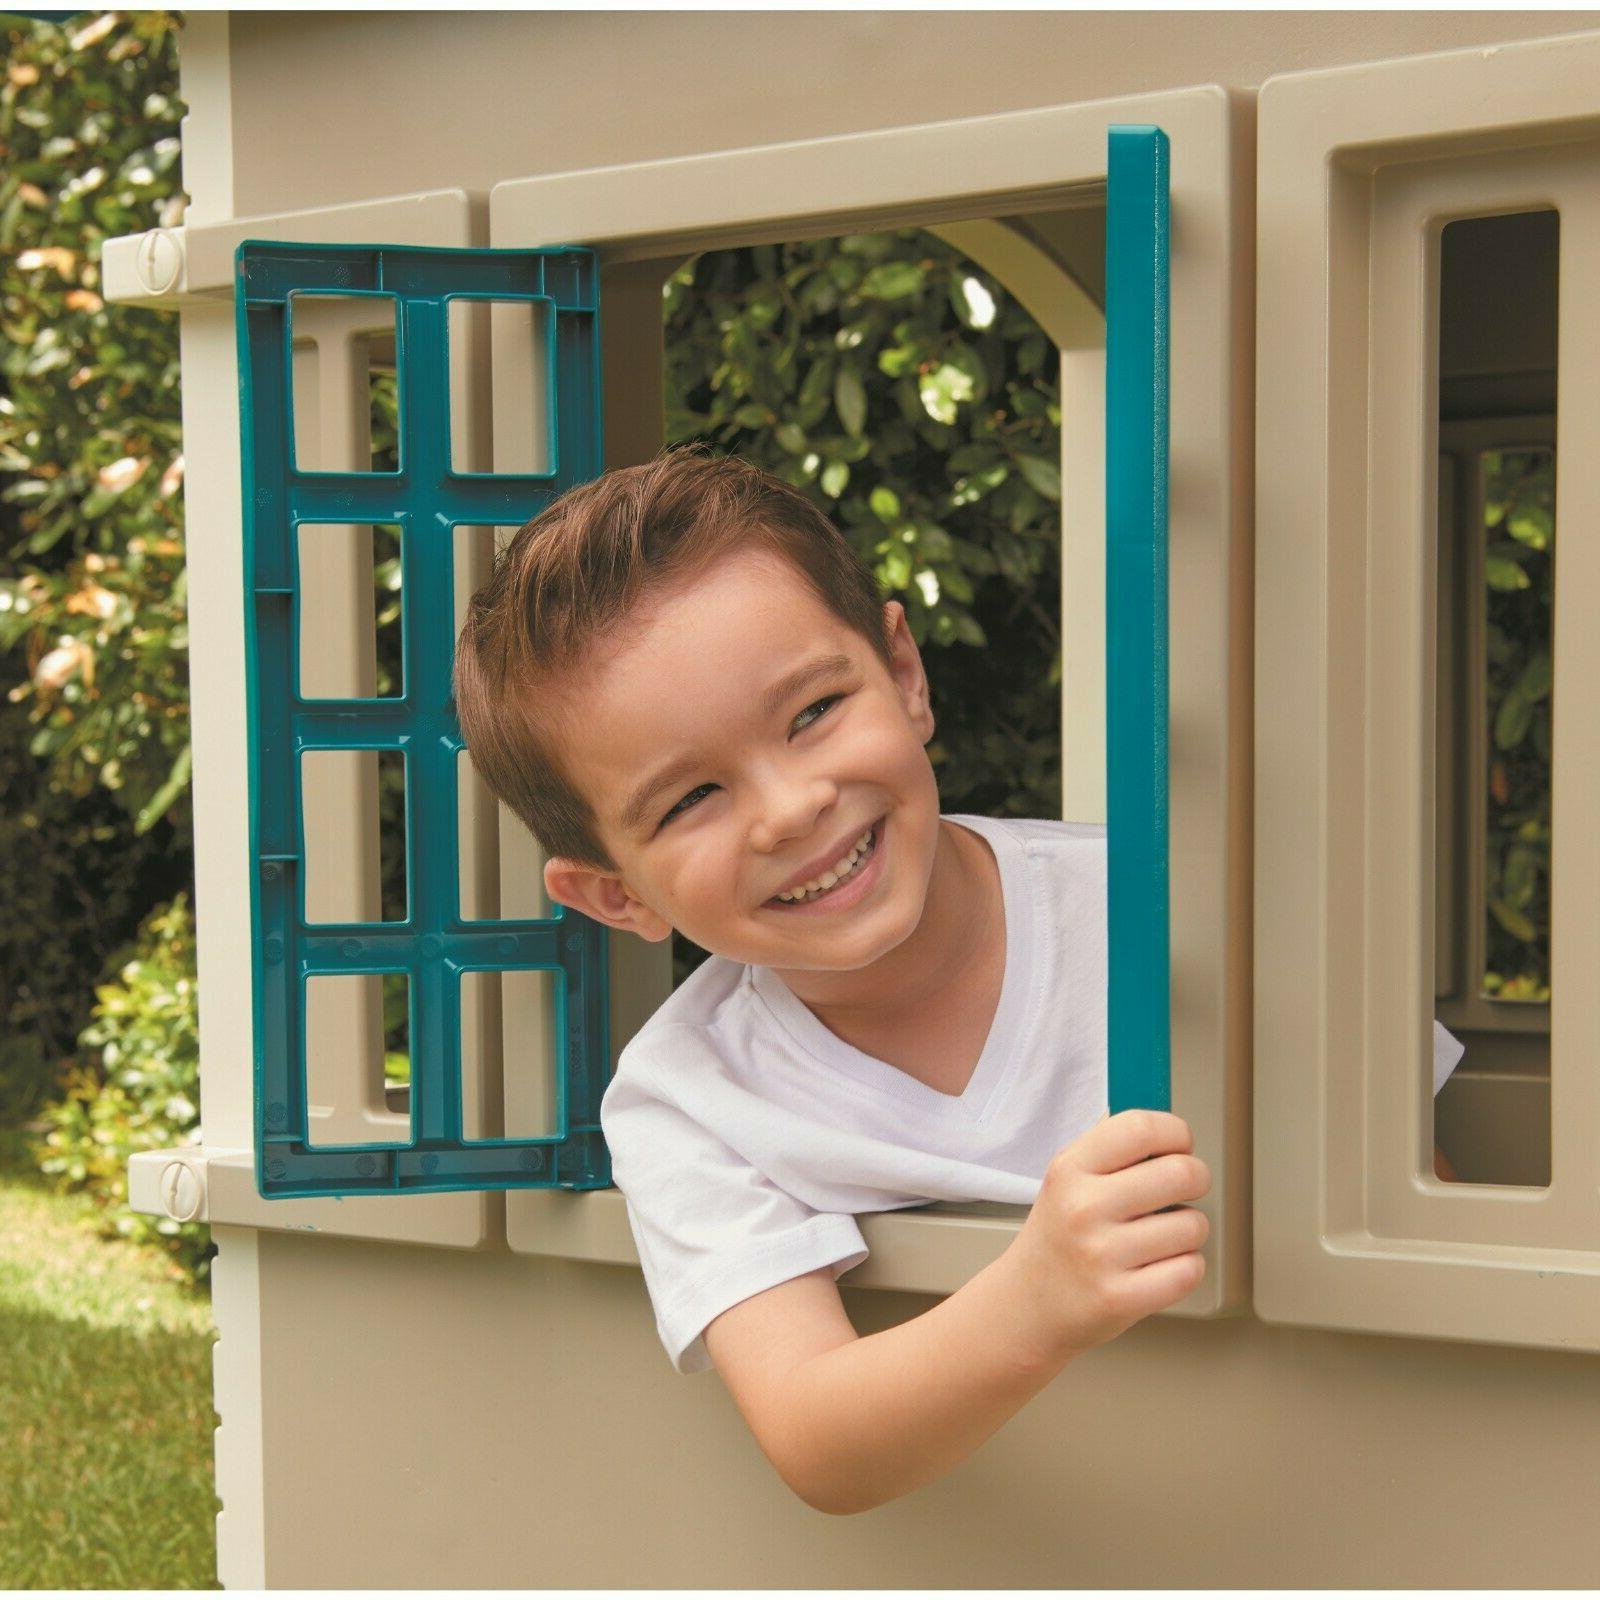 Safe Outdoor Cape Playhouse Toys Home